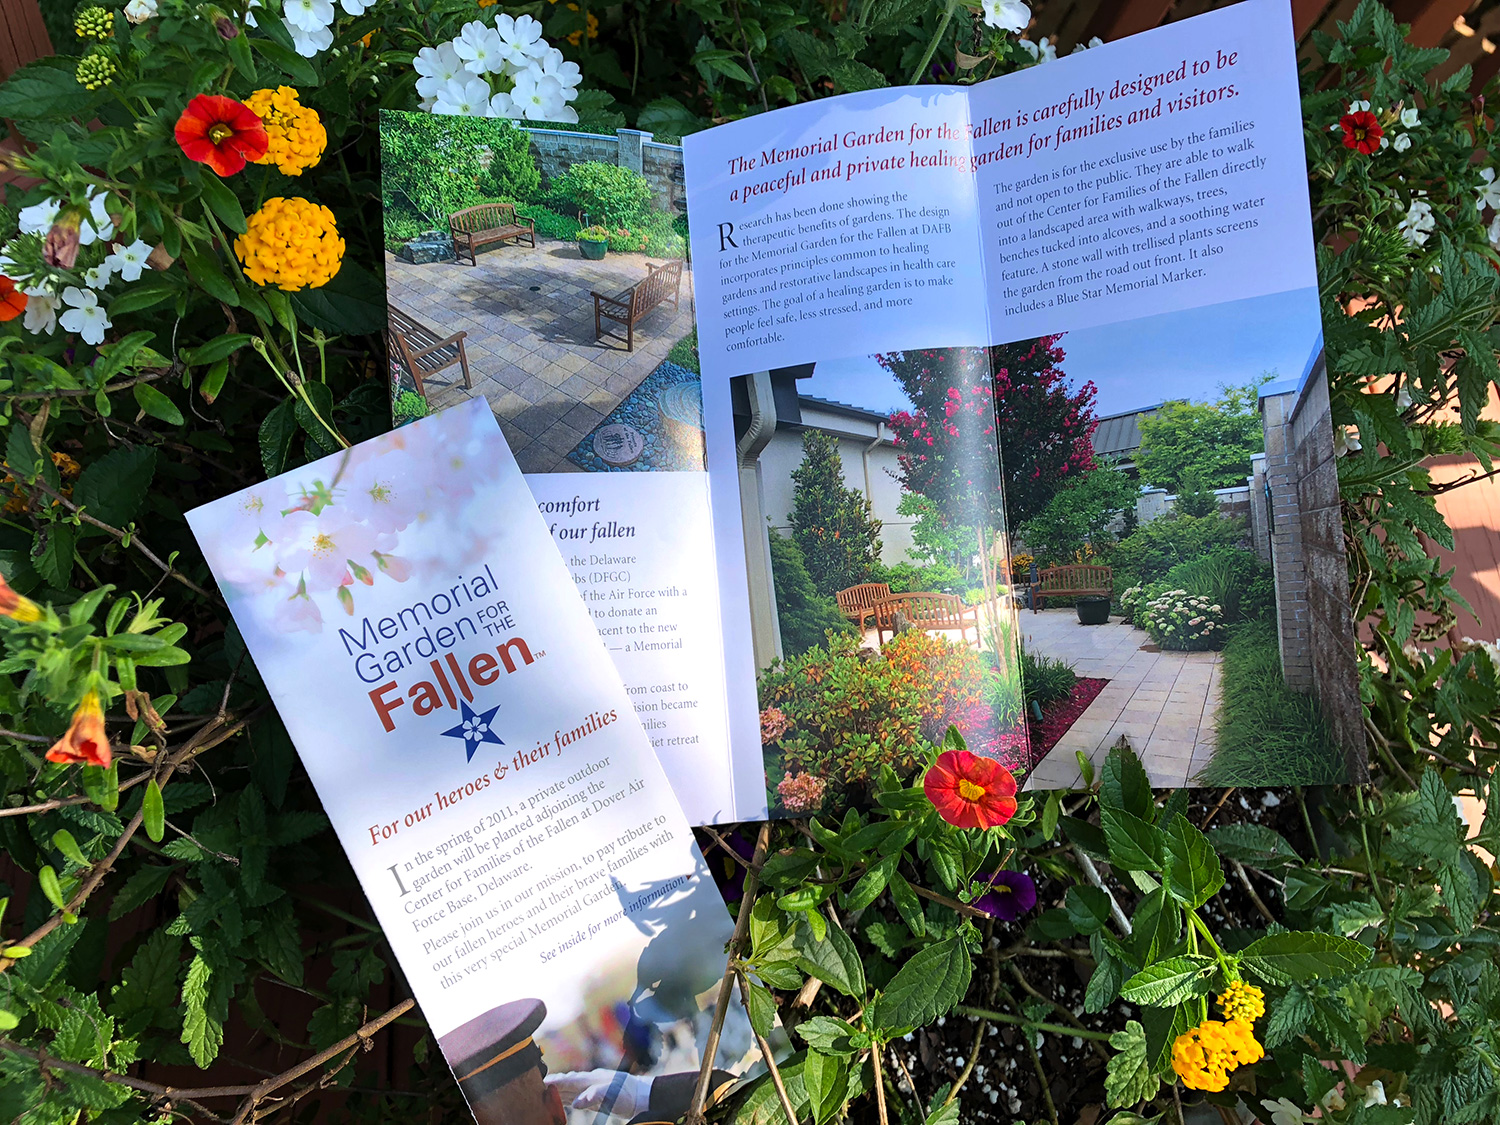 Blue Blaze custom designed print collateral for Memorial Garden for the Fallen